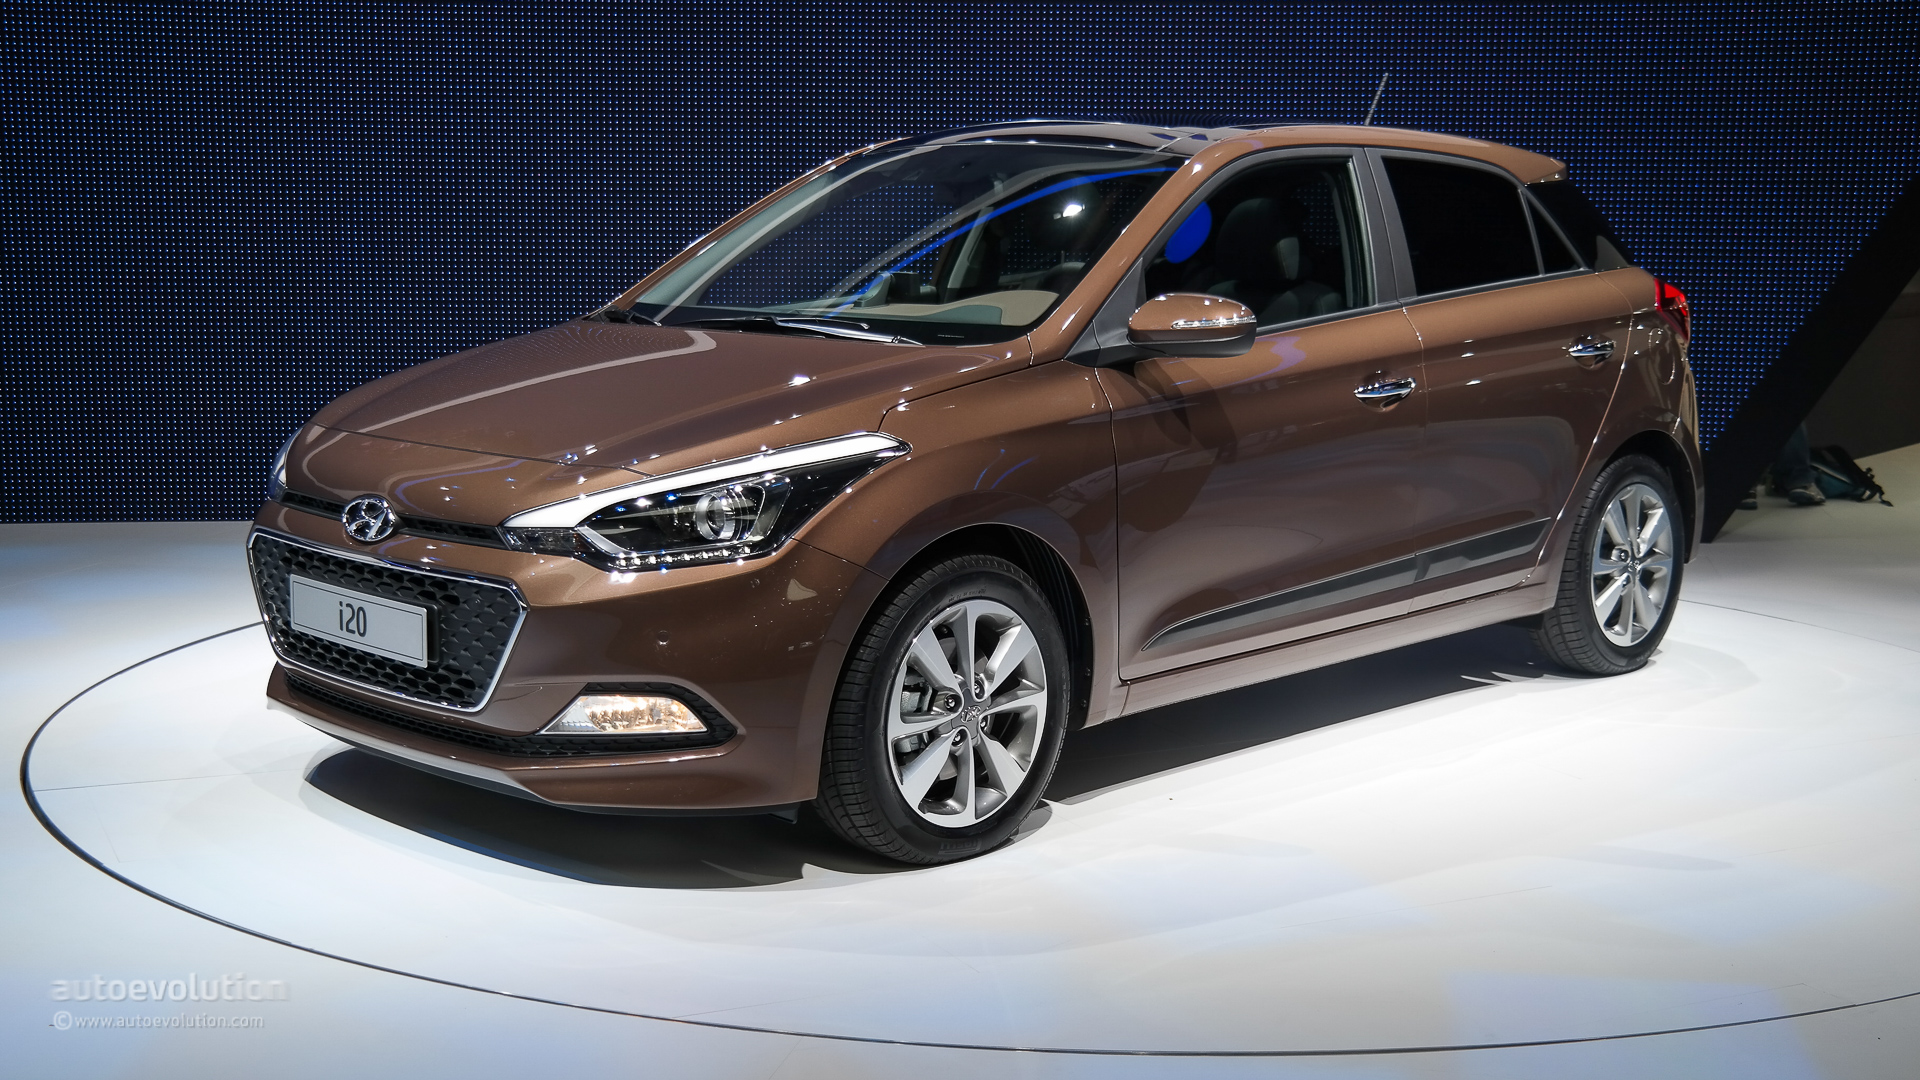 hyundai i20 pops out at paris motor show 2014 live photos autoevolution. Black Bedroom Furniture Sets. Home Design Ideas